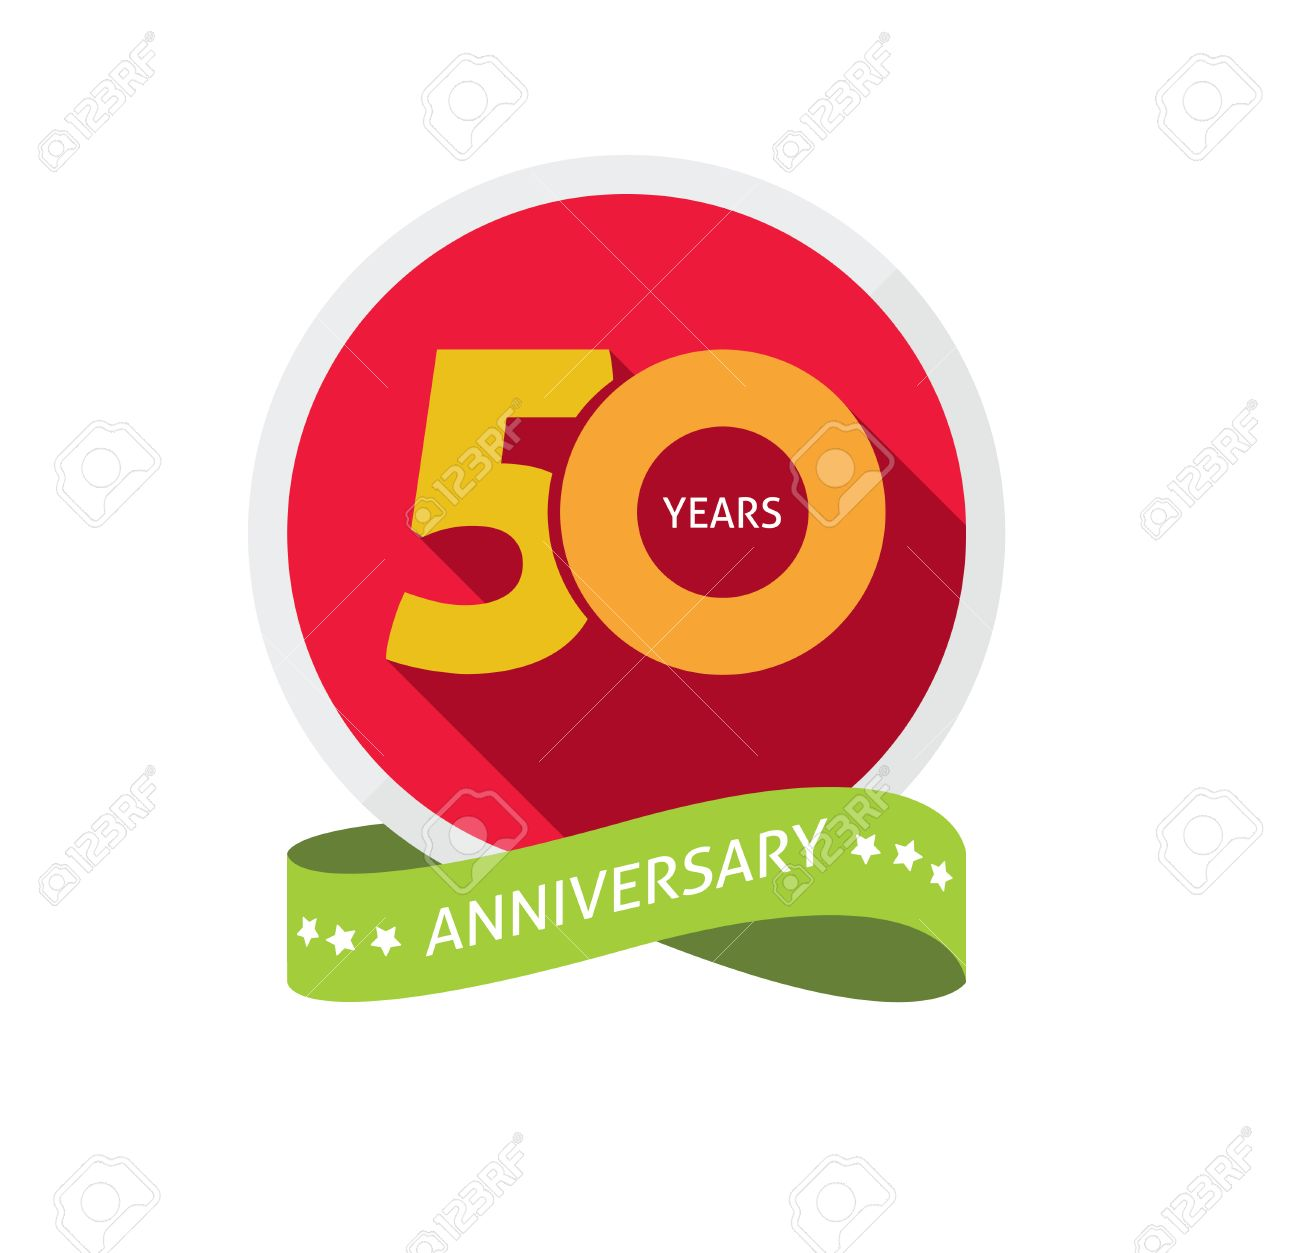 50th anniversary template with shadow on circle number 50 years 50th anniversary template with shadow on circle number 50 years icon fiftieth years birthday buycottarizona Choice Image